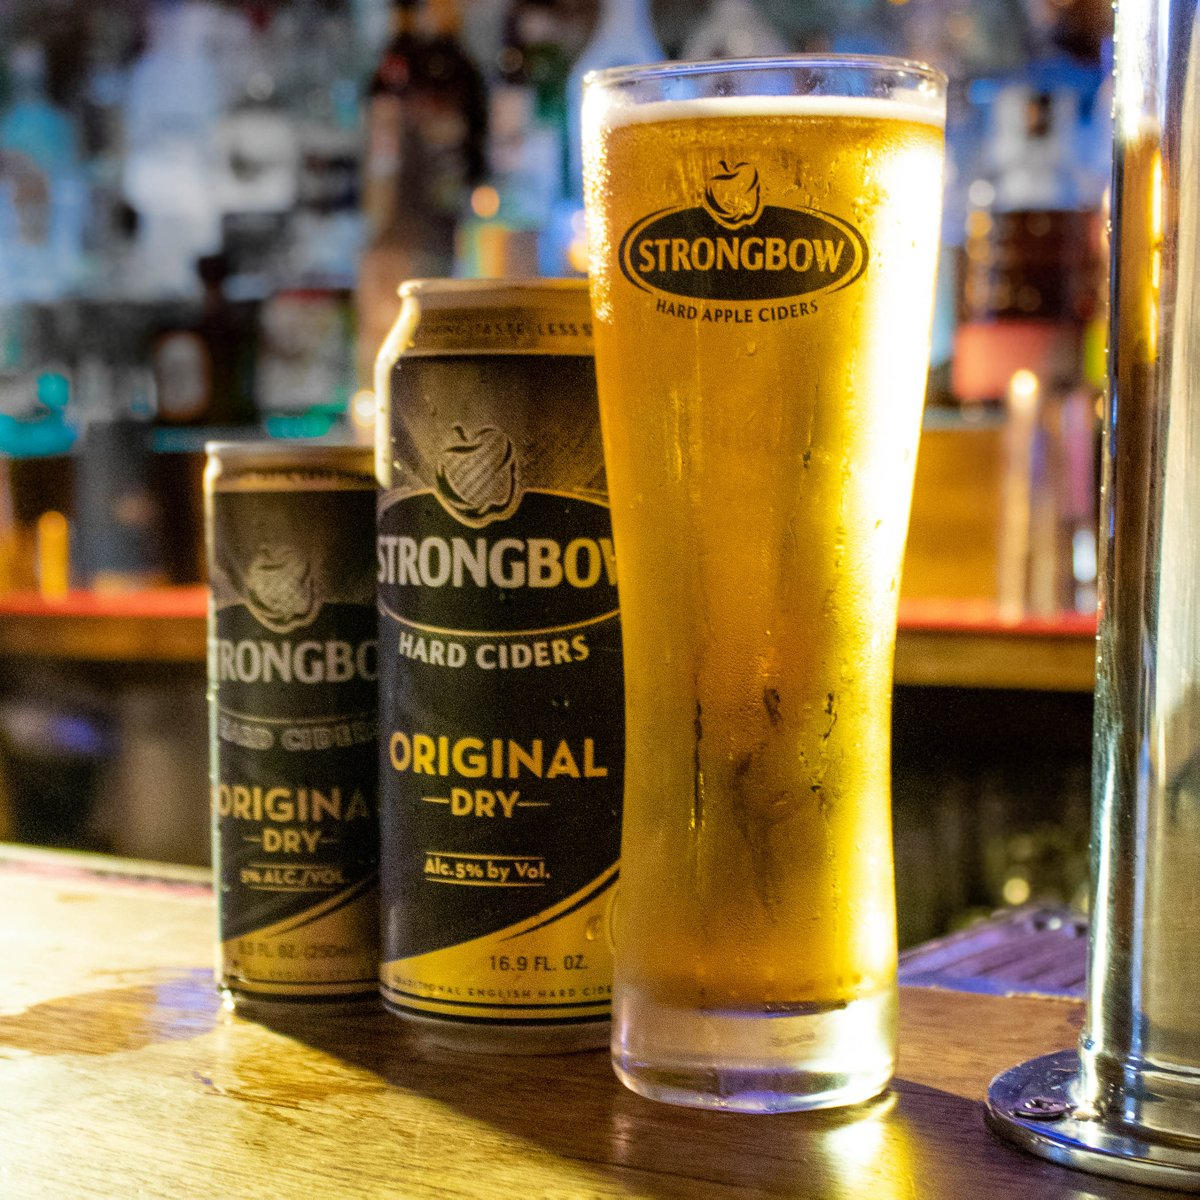 Just in case you didn't know already, they're back. #Strongbow https://t.co/kmFbKjovXF